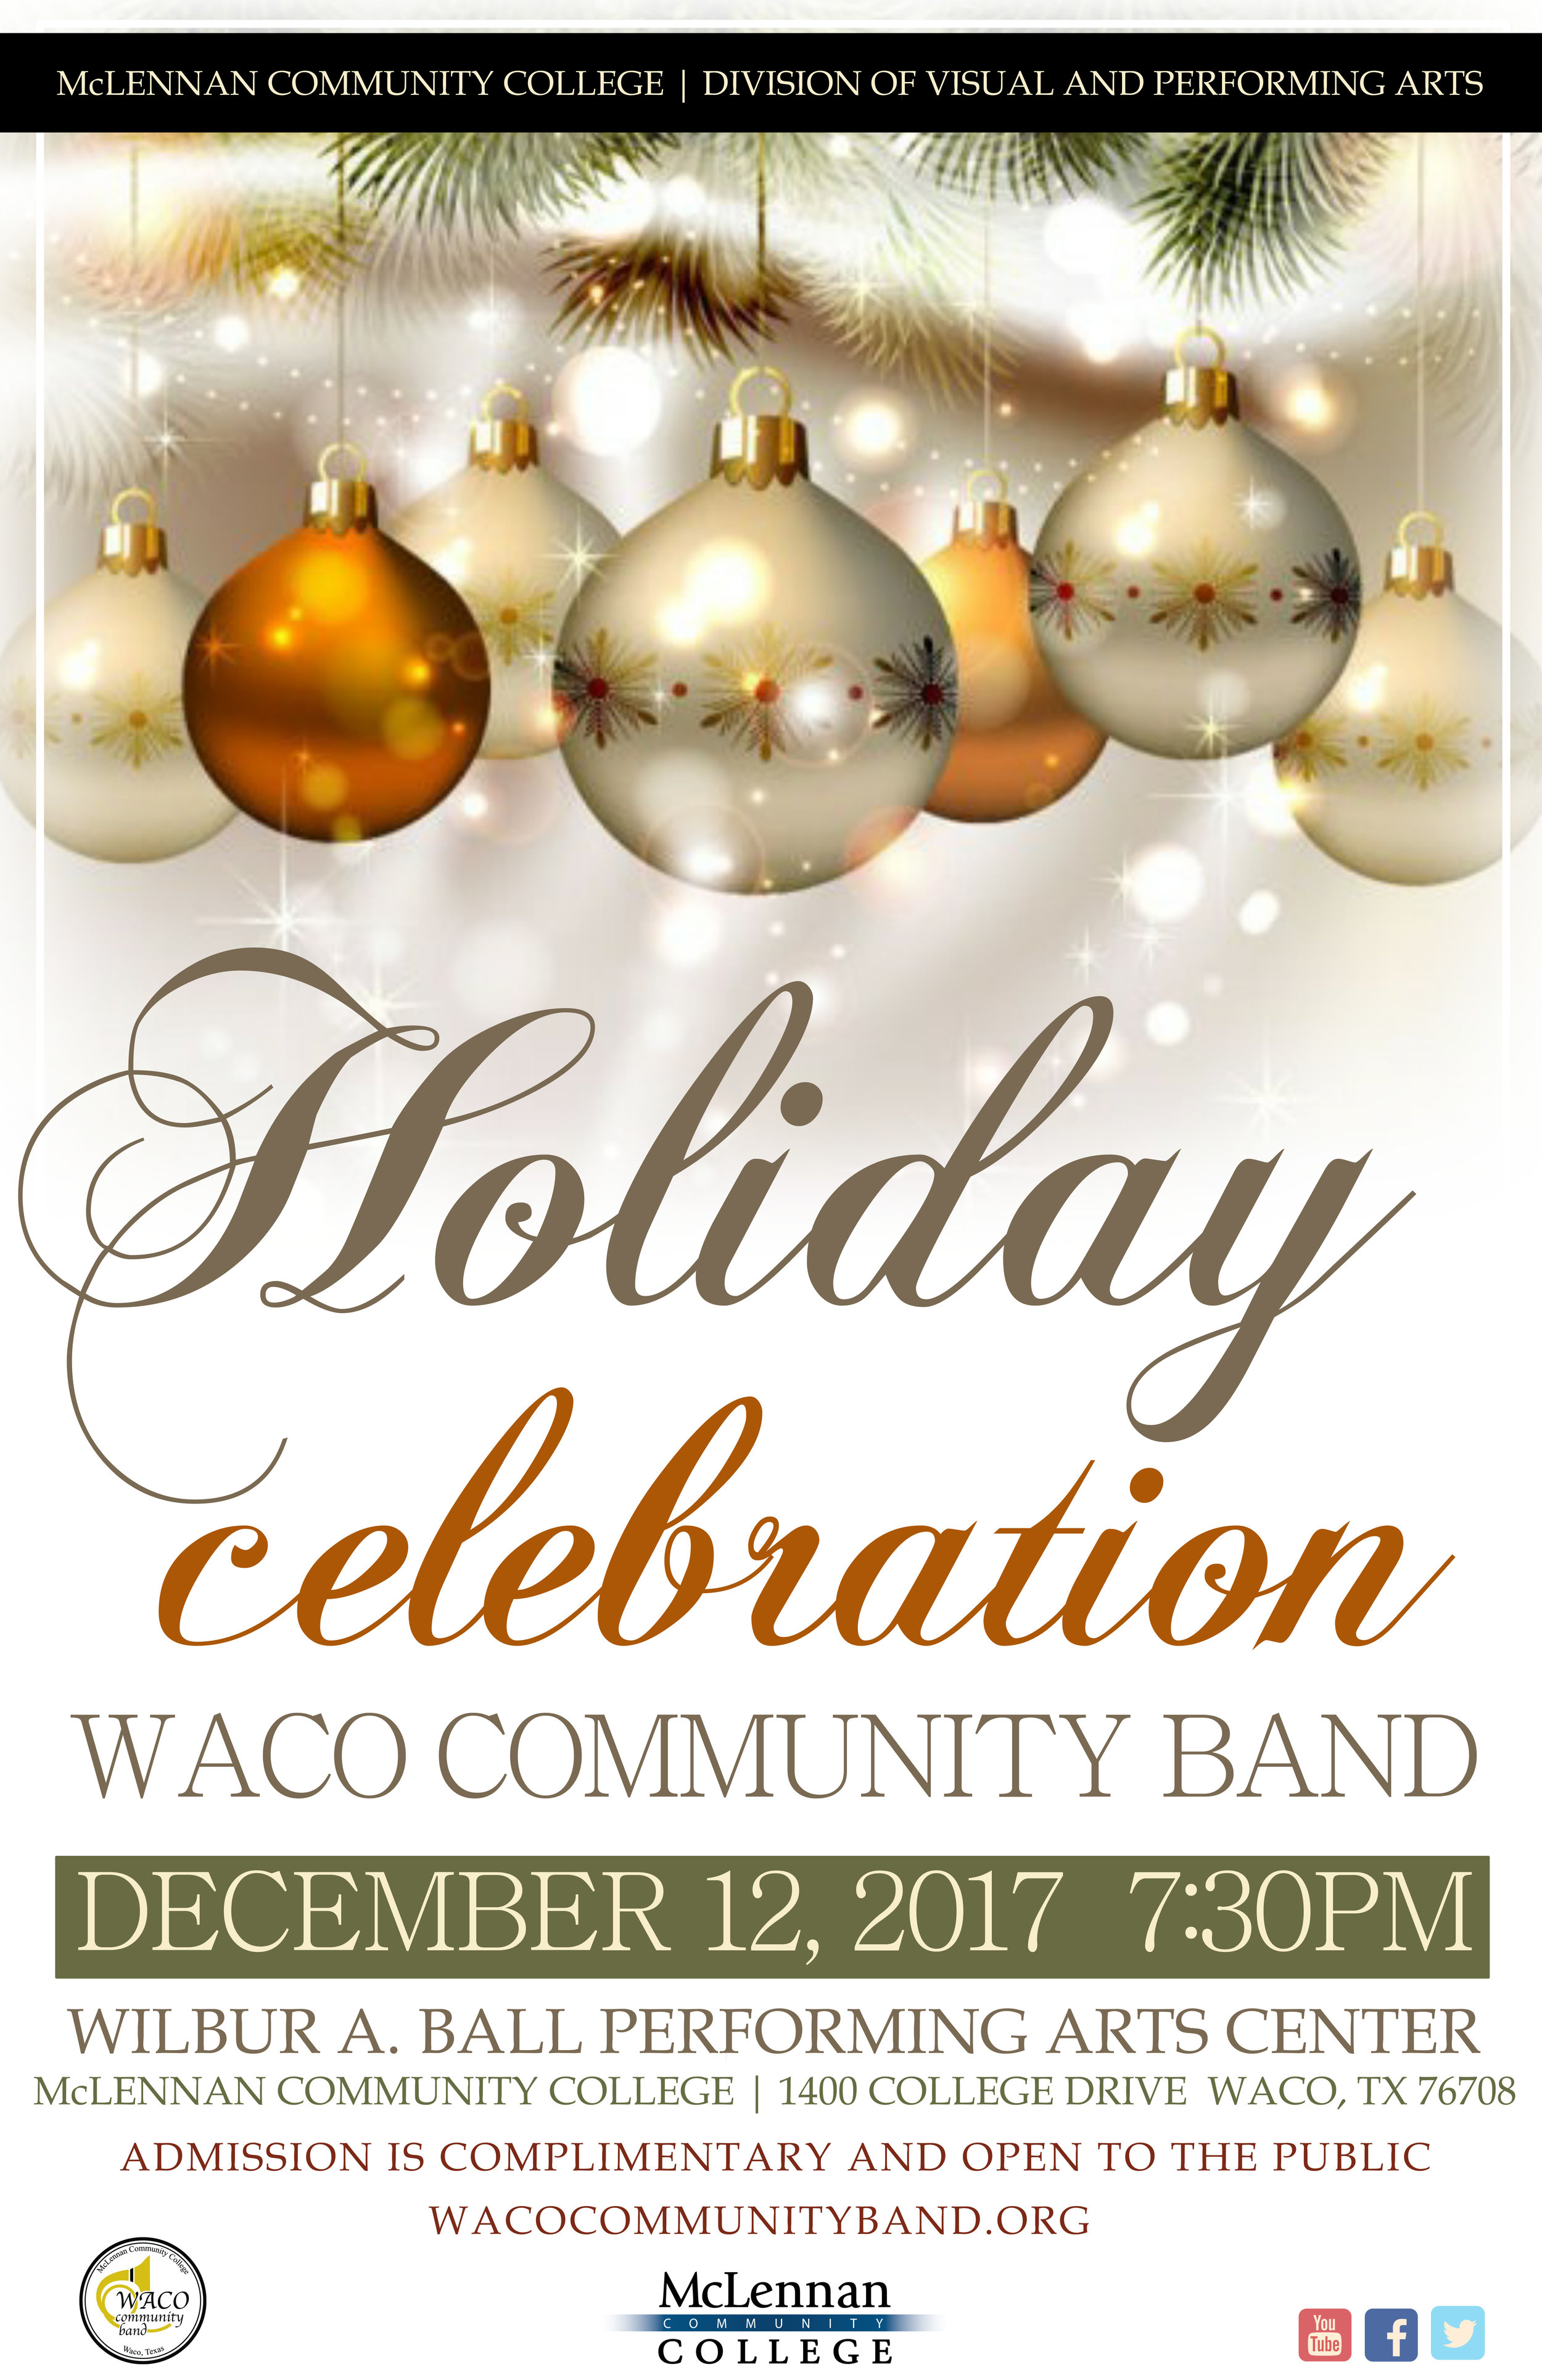 WCB_Dec_12_17_Holiday_Celebration.jpg